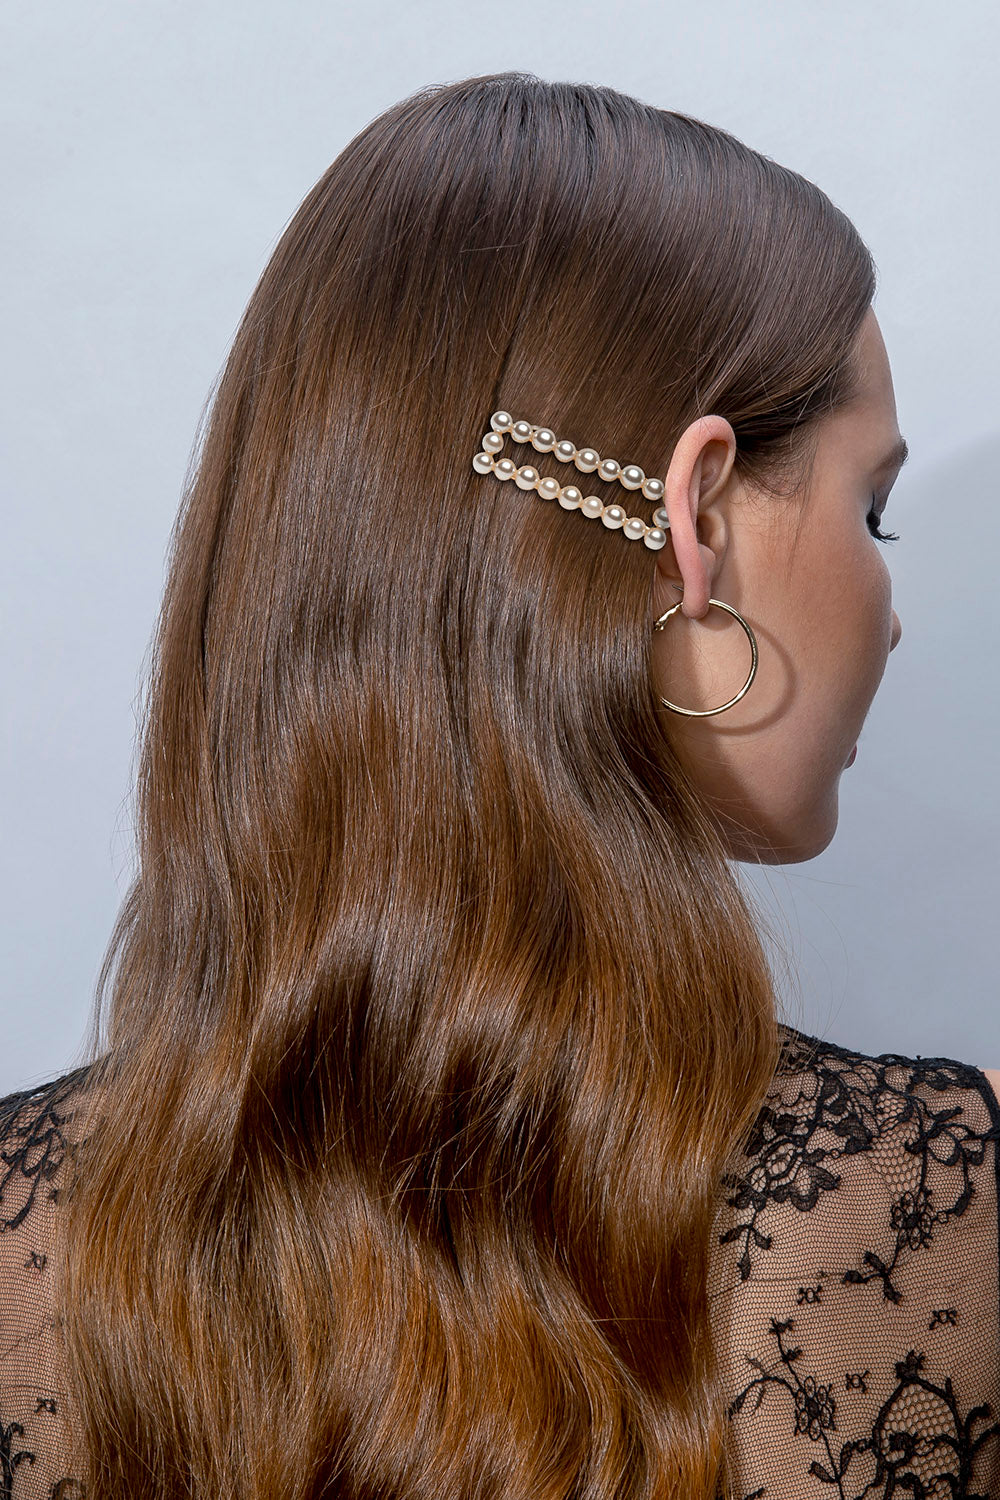 Light Brunette Female Wavy Long Haired Model wearing The Hair Edit's Pearl Square Gold Jeweled Clip Hair Accessory